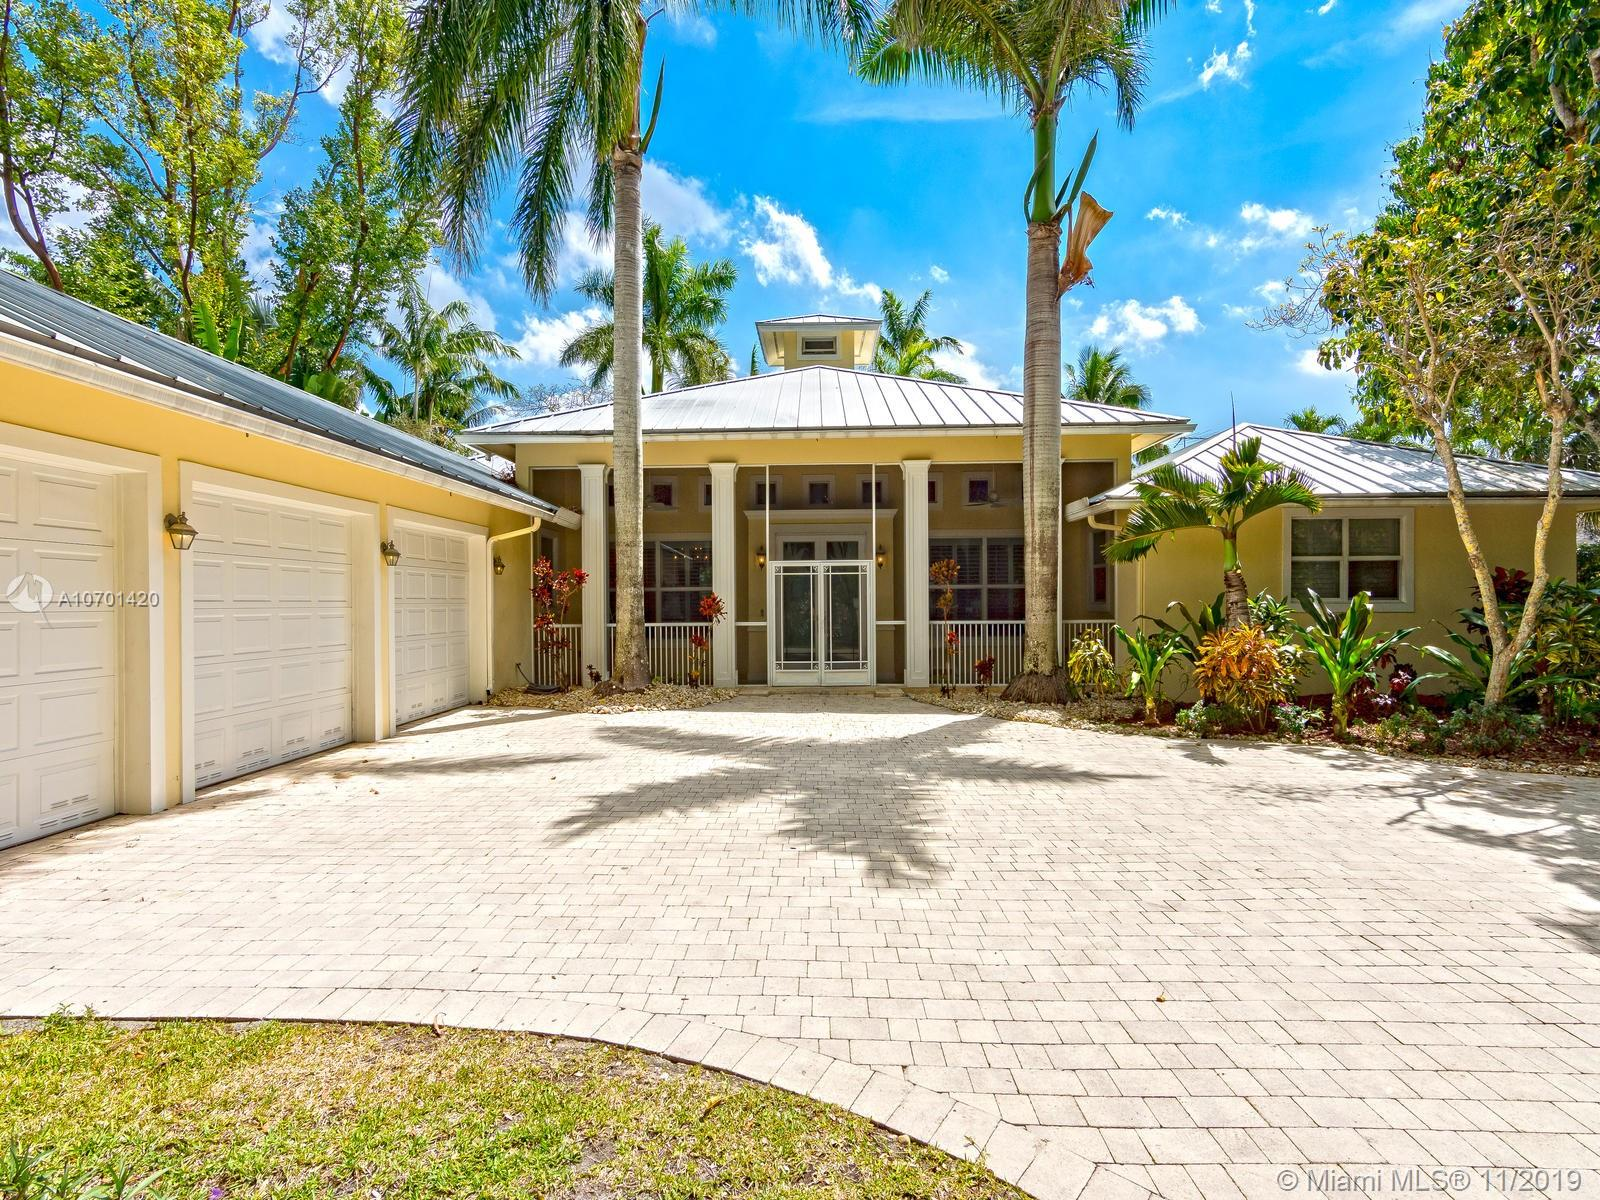 10001 SW 60th Ave, Kendall, Florida